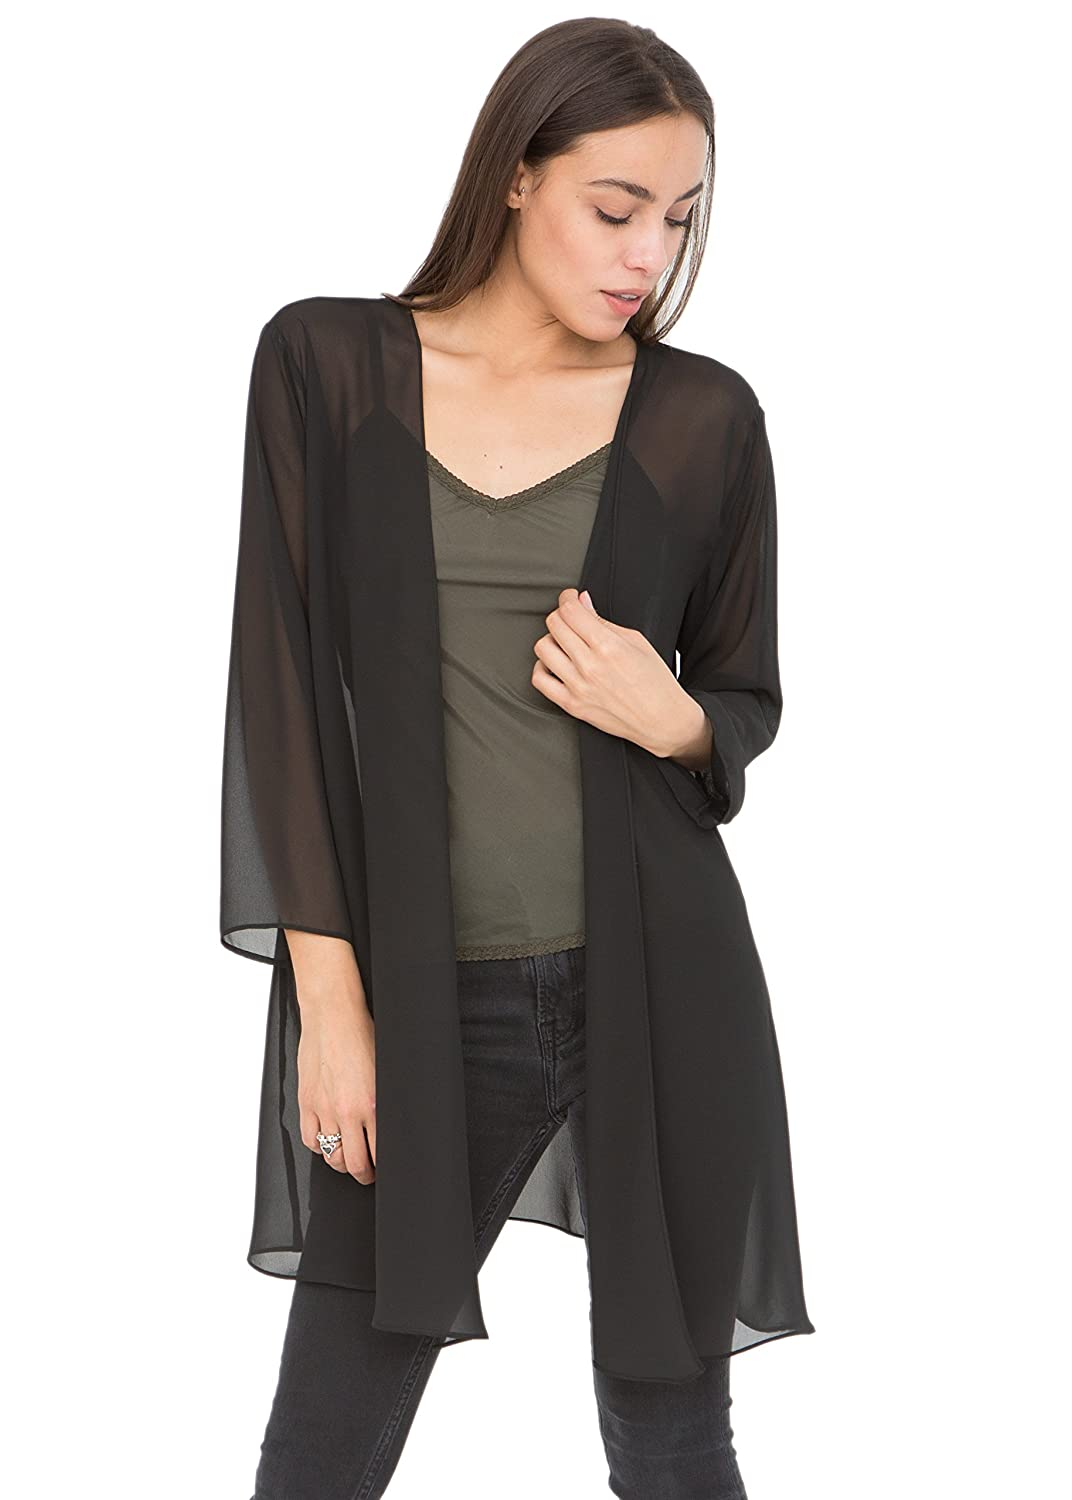 Elegant Sheer Longline Drape Cardigan: Amazon.co.uk: Clothing